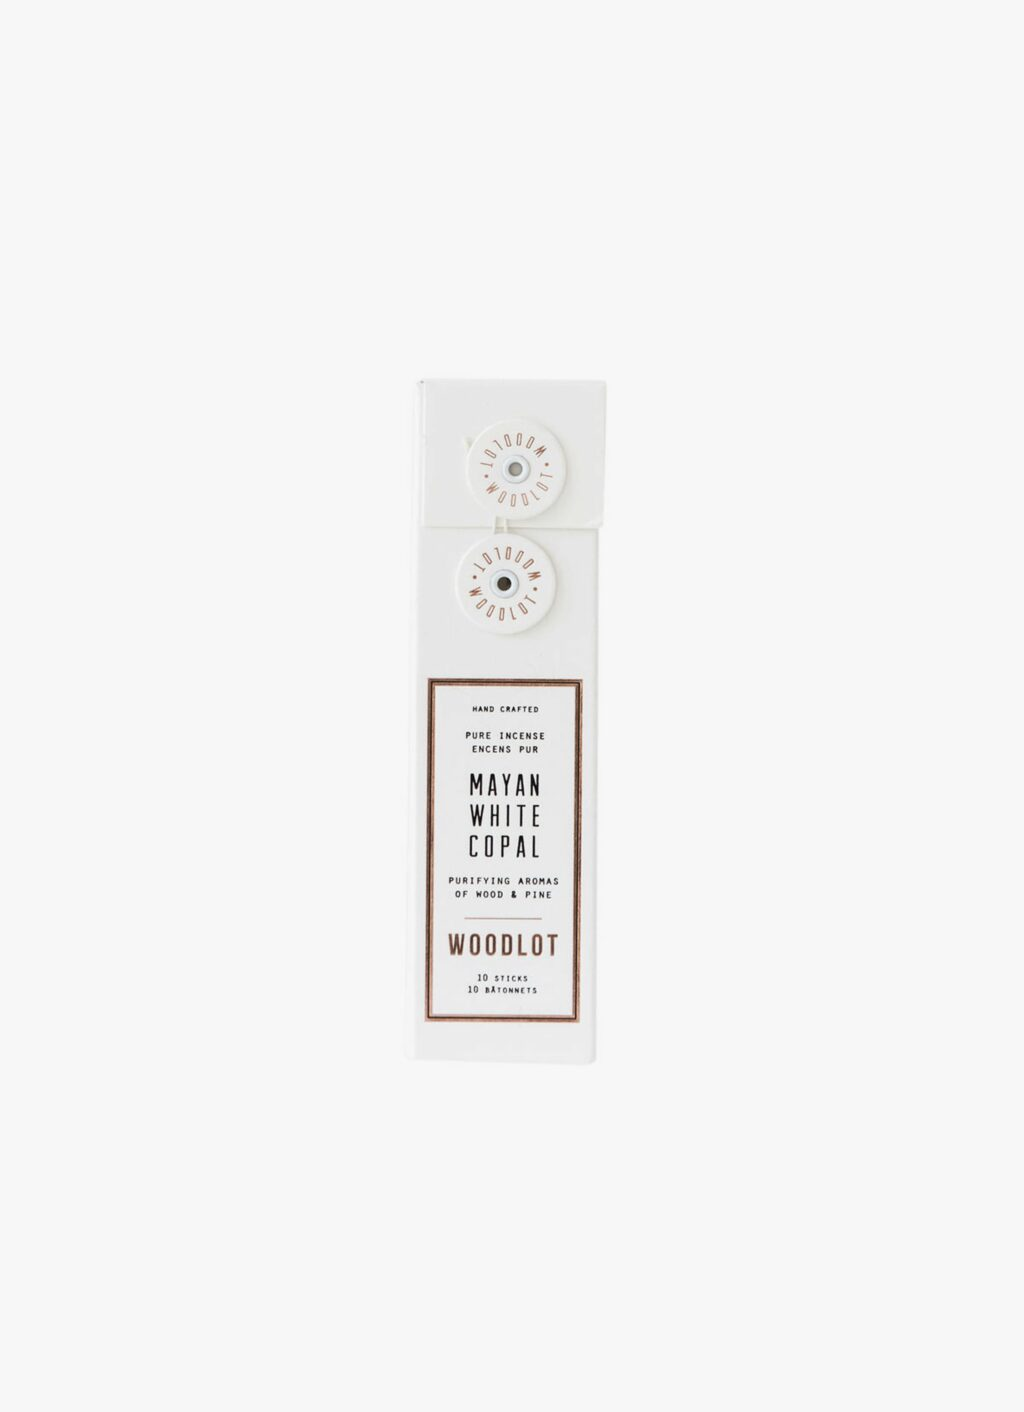 Woodlot - Mayan White Copal - 10 hand crafted Incense sticks